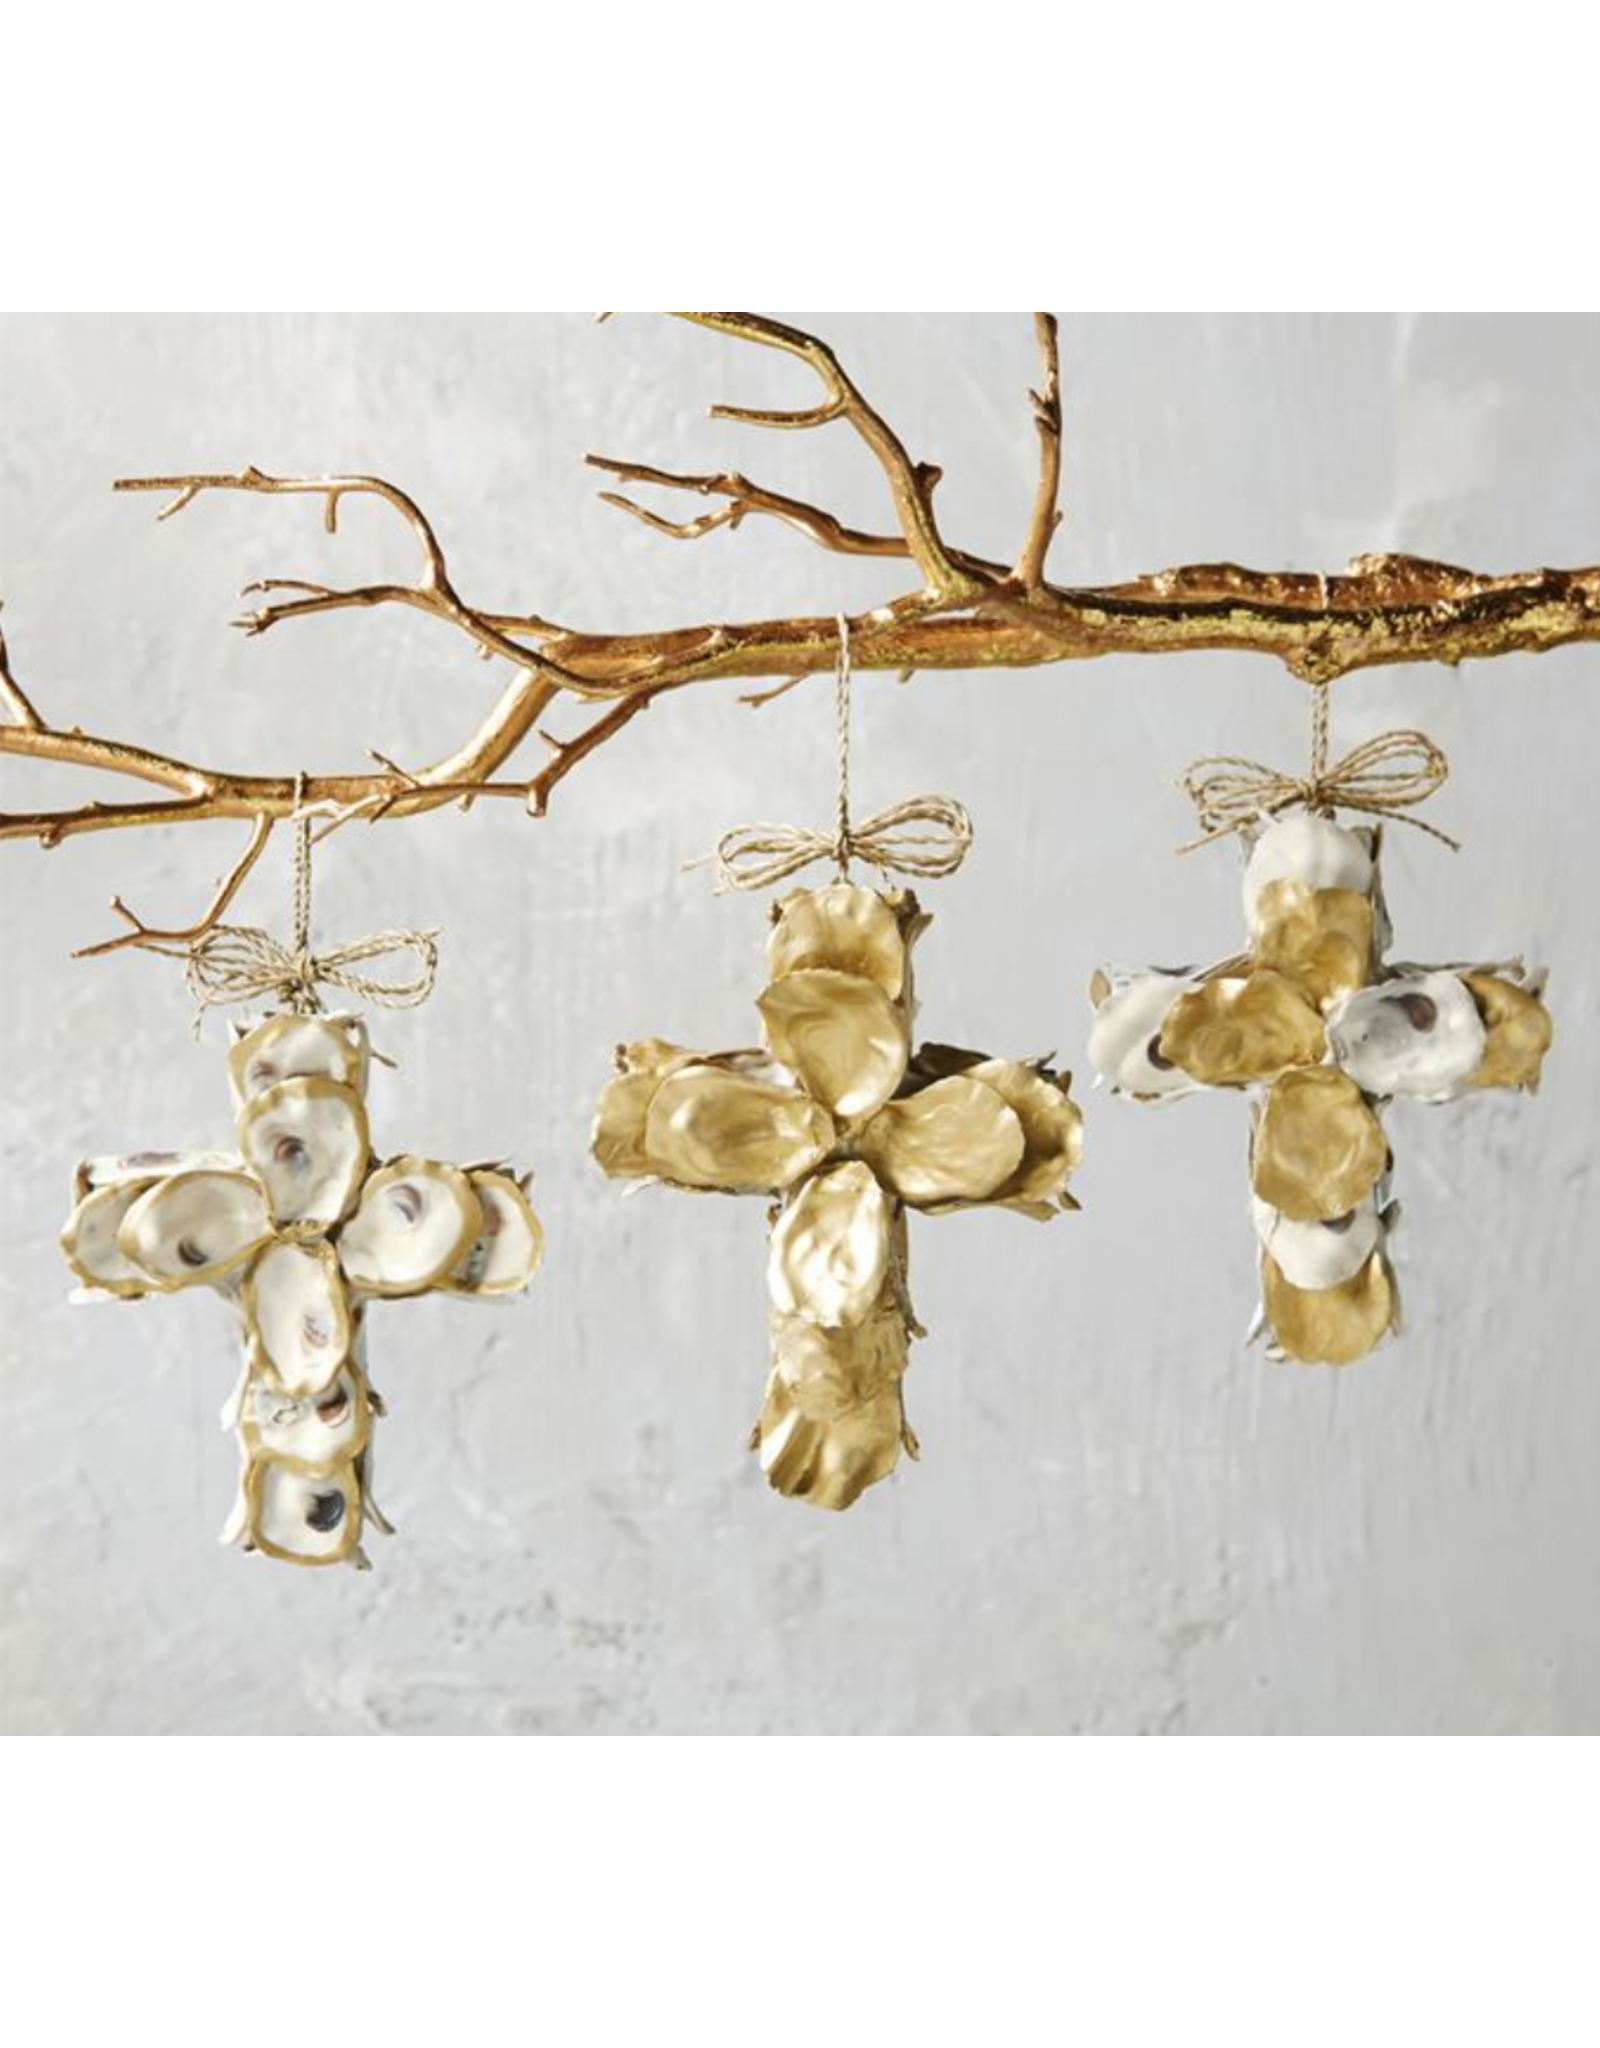 Gold Oyster Cross Ornaments